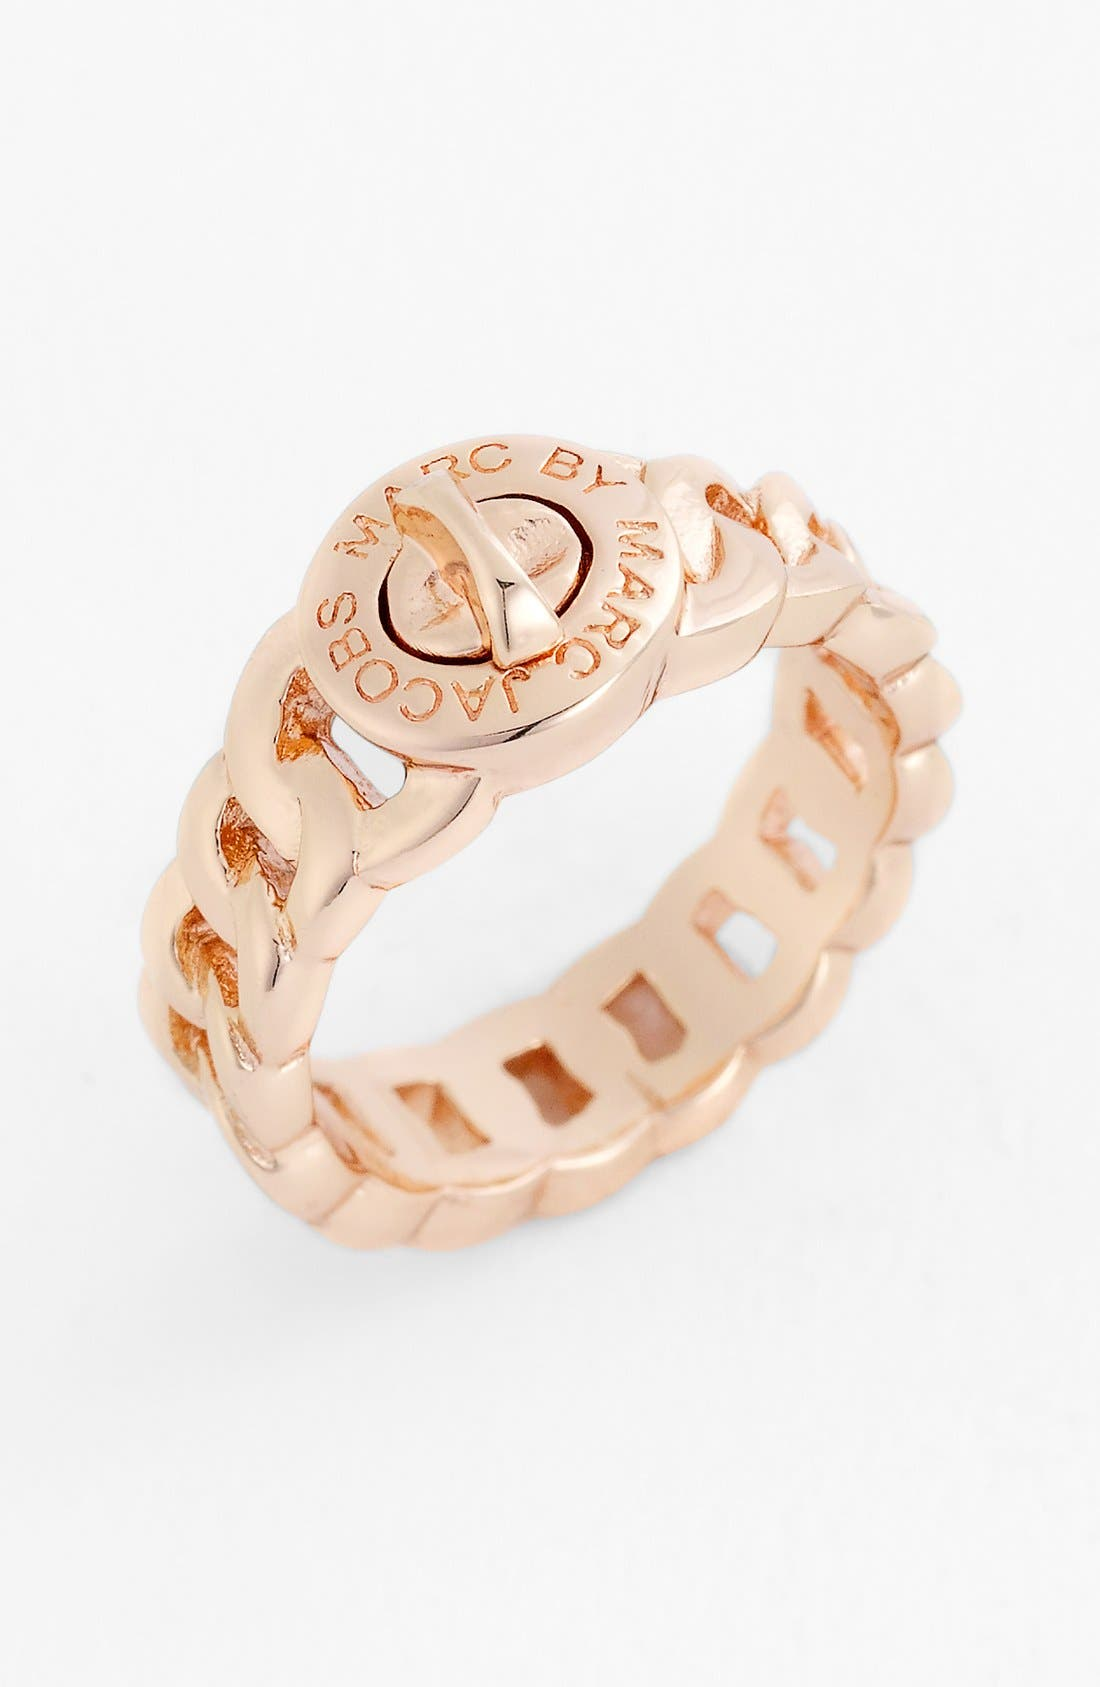 Main Image - MARC BY MARC JACOBS 'Turnlock - Katie' Small Ring